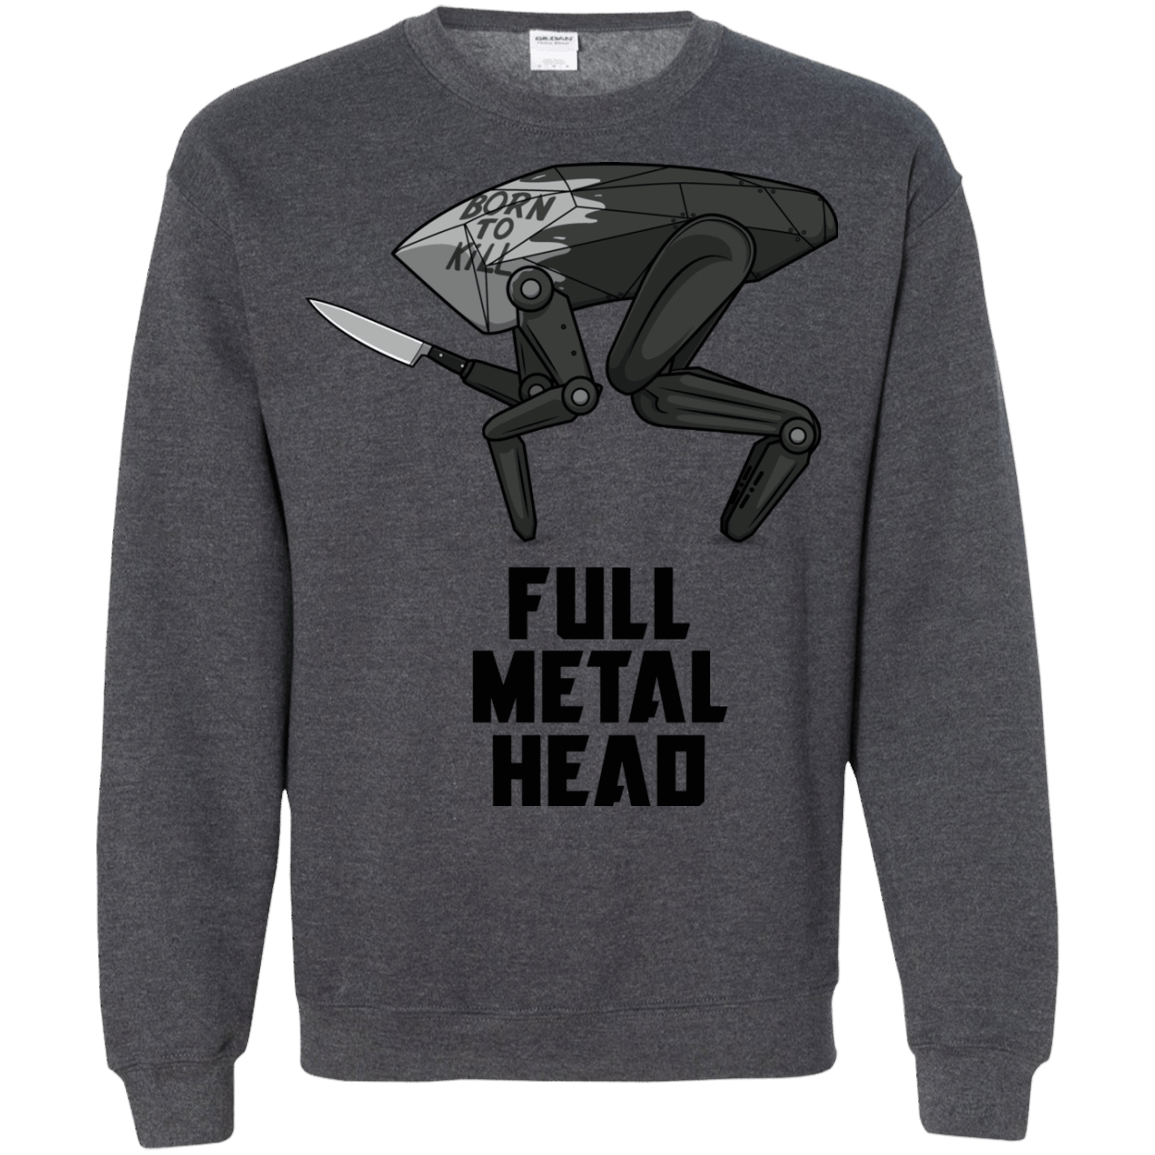 Sweatshirts Dark Heather / S Full Metal Head Crewneck Sweatshirt